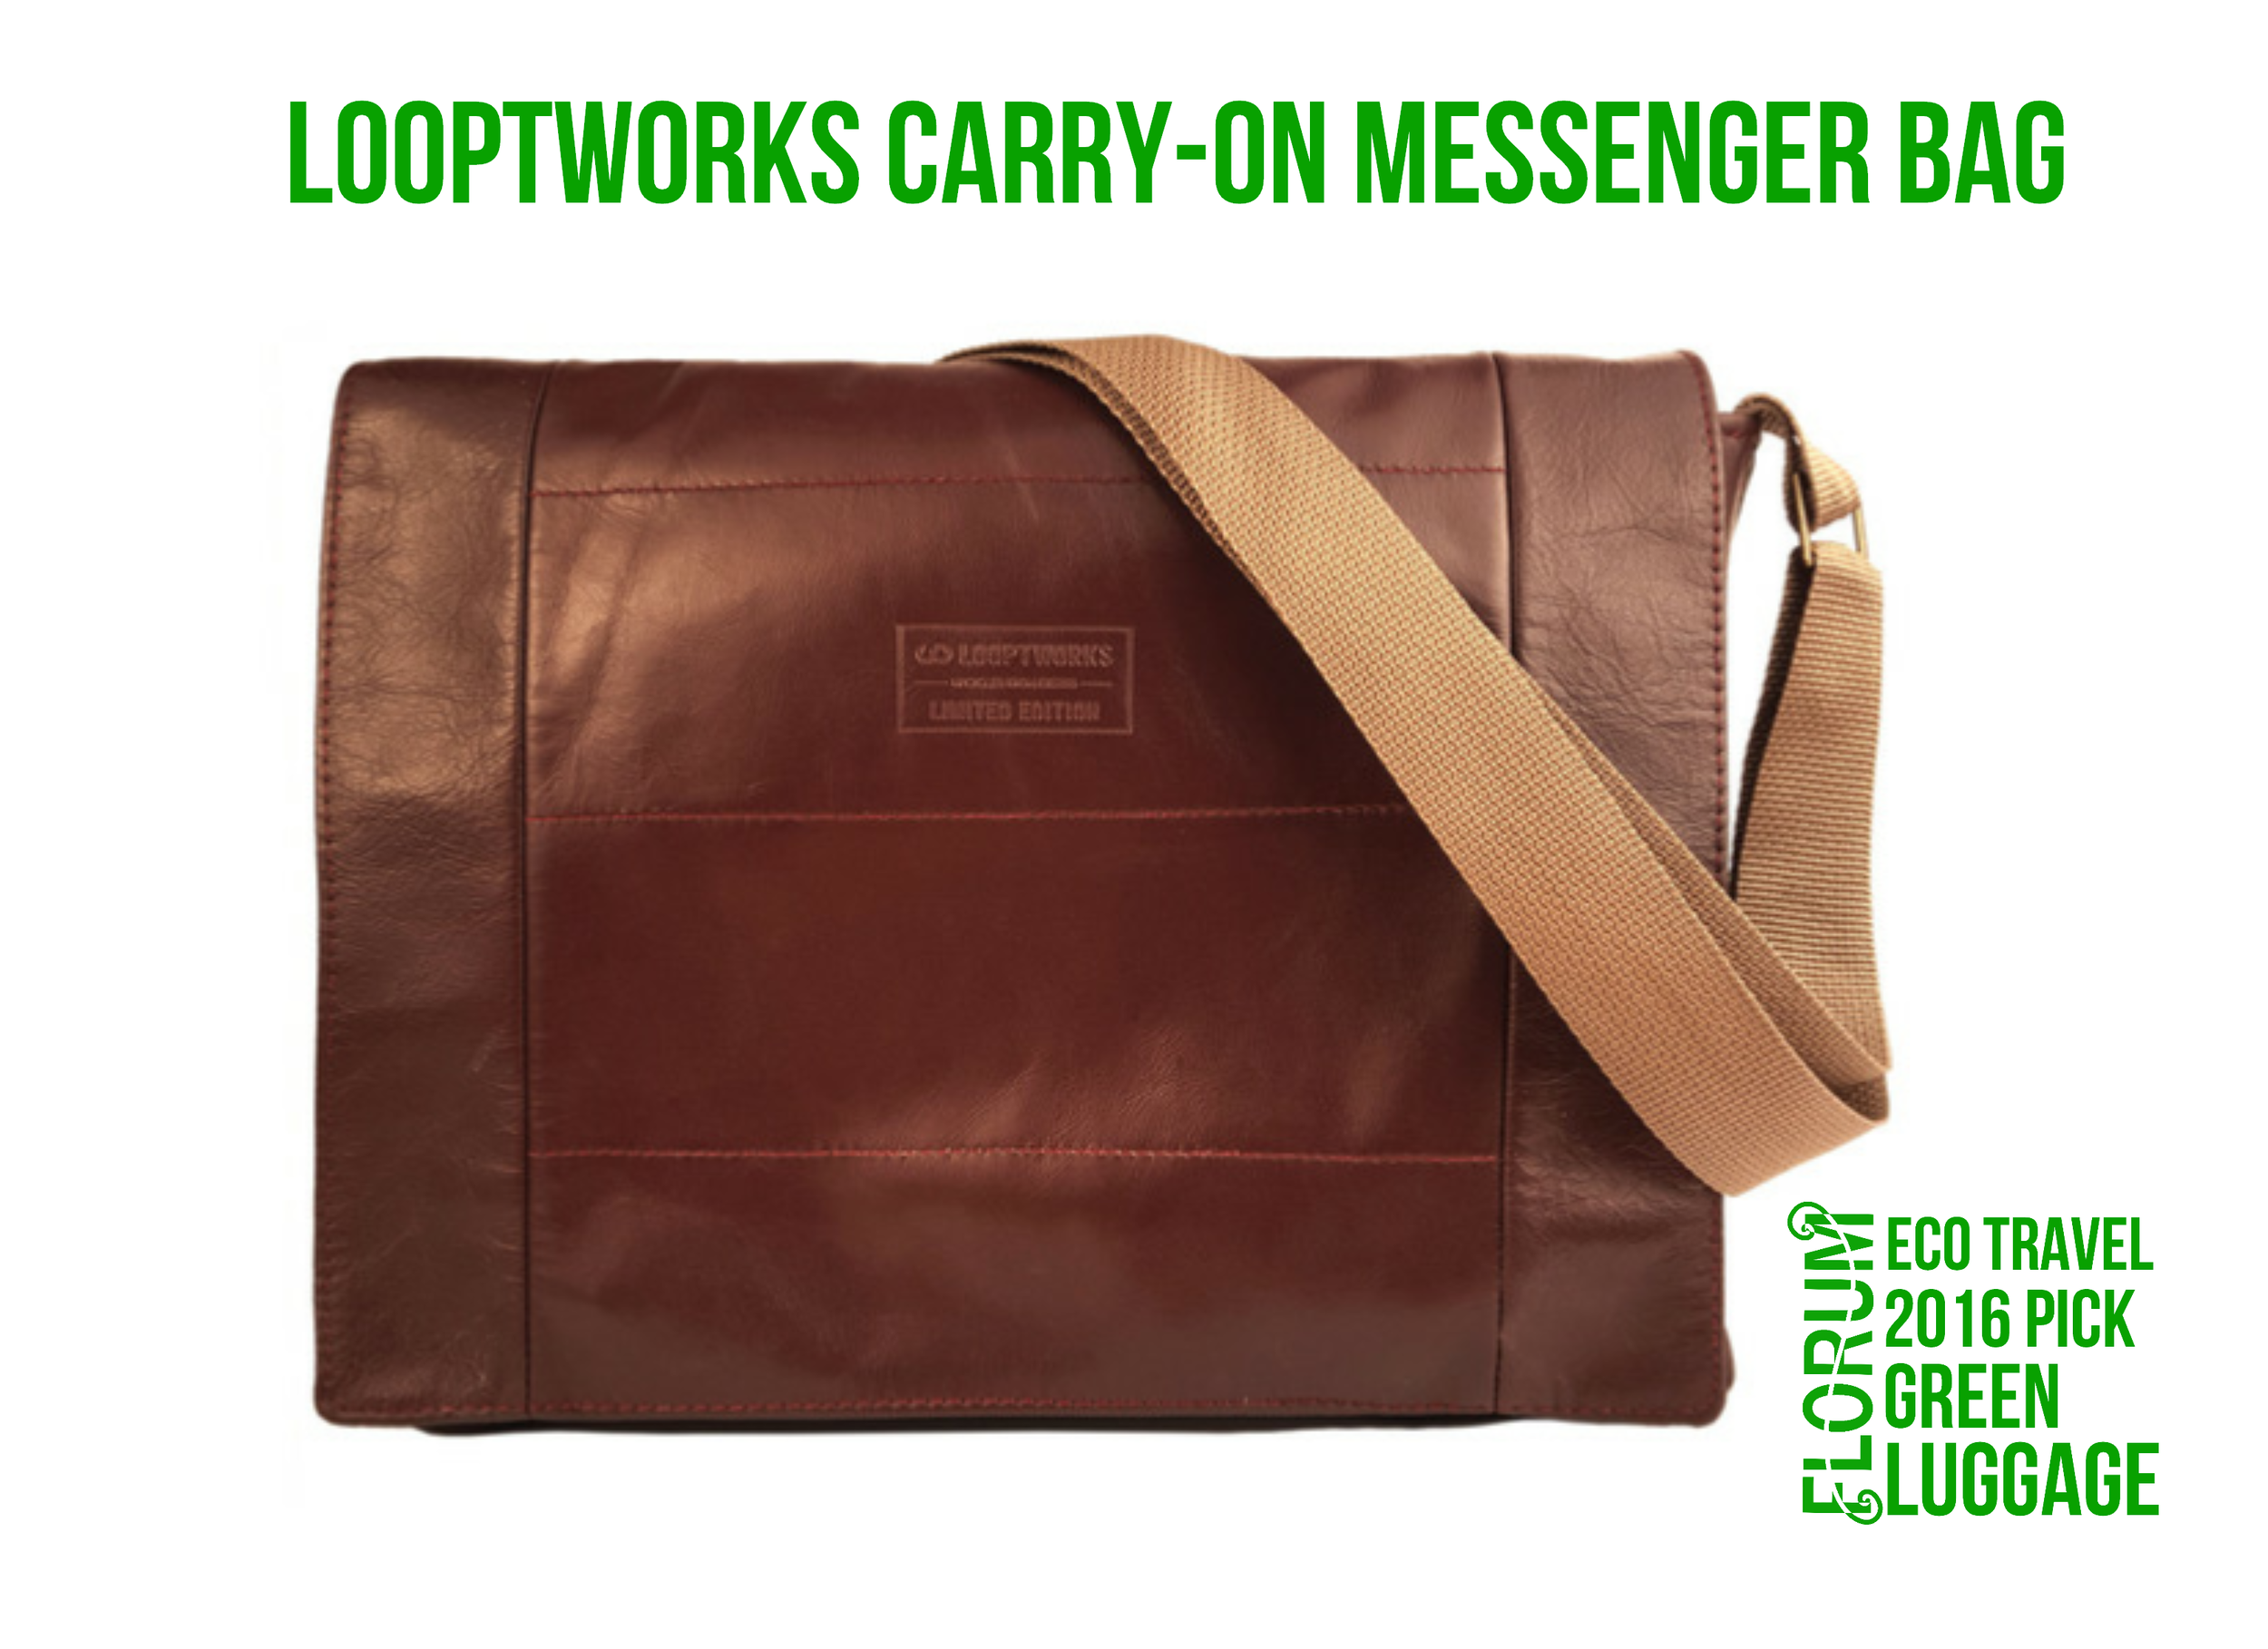 Florum Eco Travel 2016 Ethical Luggage Pick - LooptWorks Alaska Airlines Carryon Messenger - Noelle Lynne